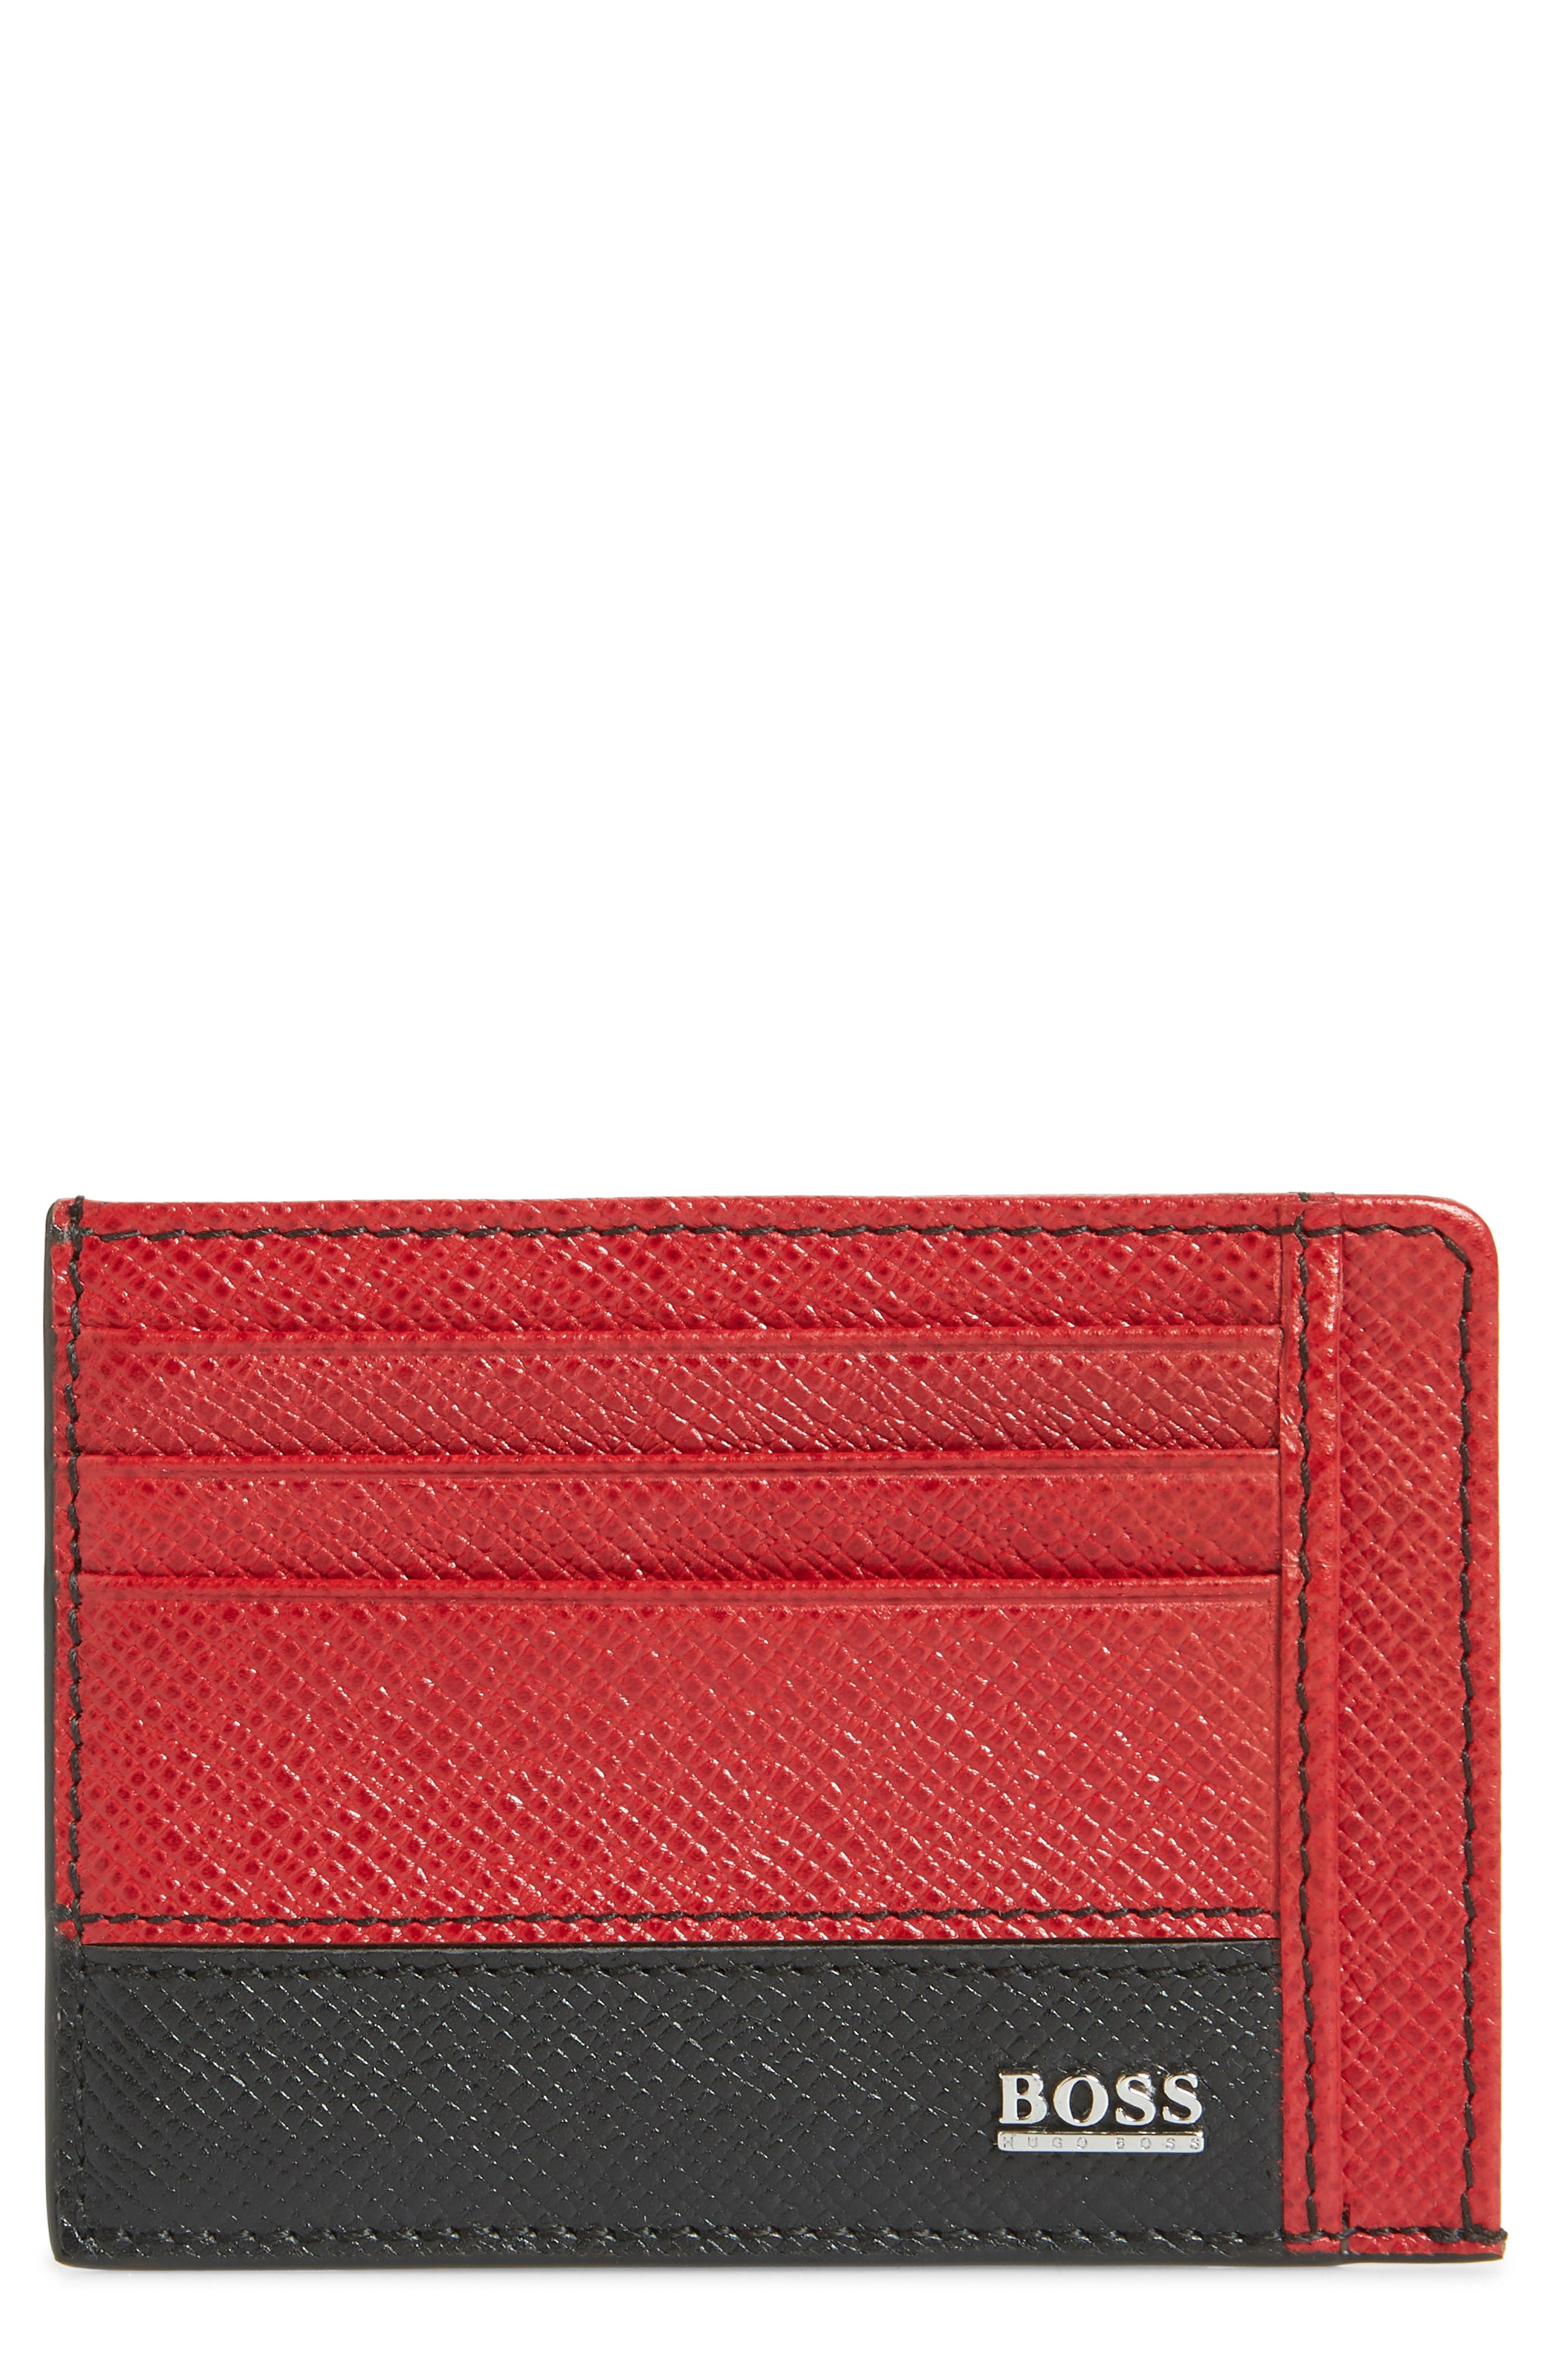 Embossed Leather Card Case,                             Main thumbnail 1, color,                             DARK RED